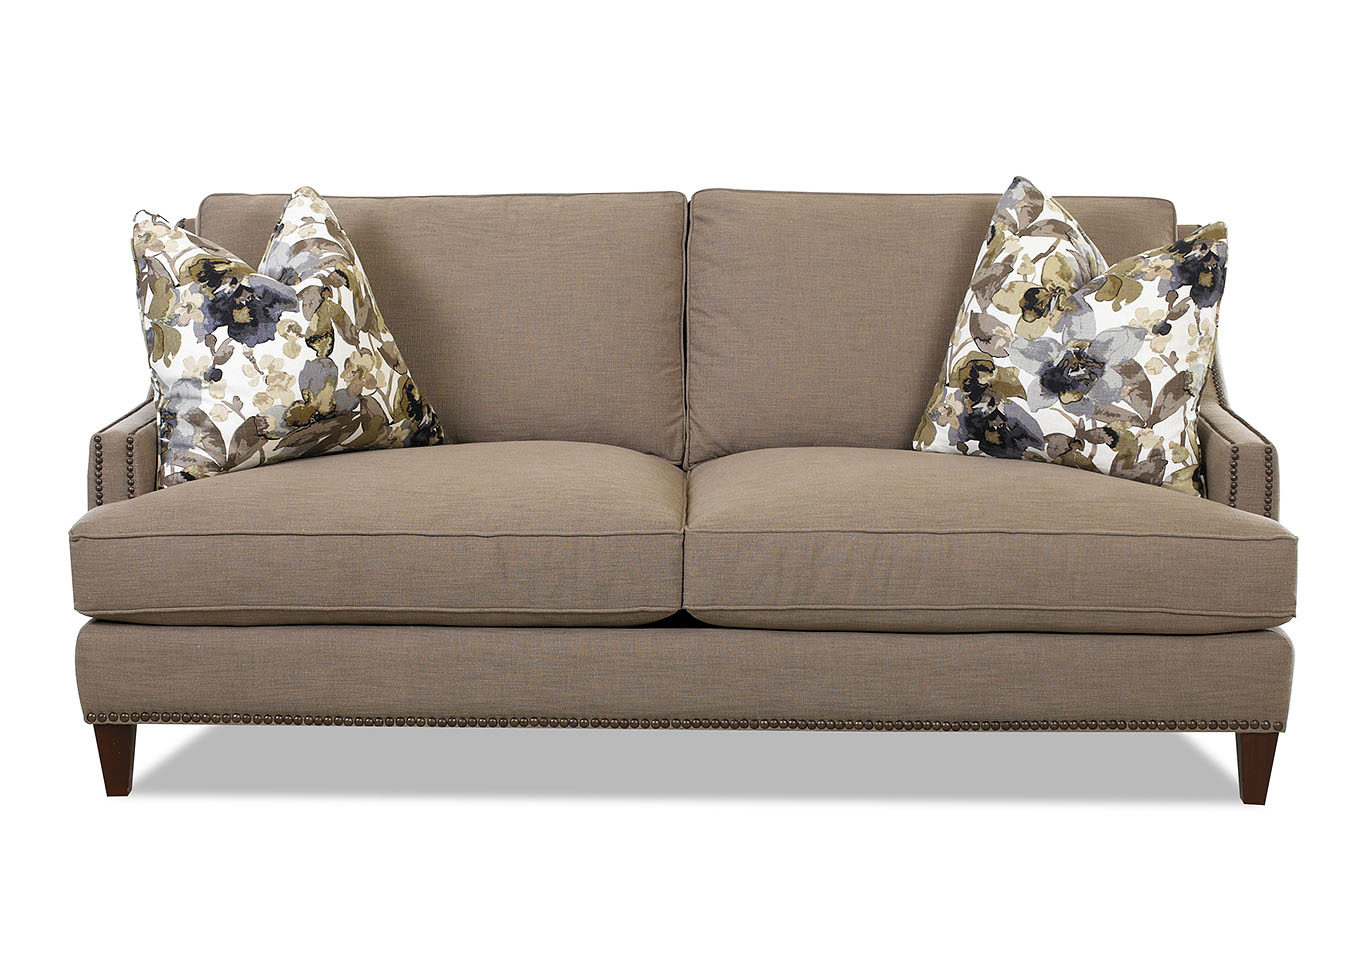 Duchess Lizzy Hemp Stationary Fabric Sofa,Klaussner Home Furnishings